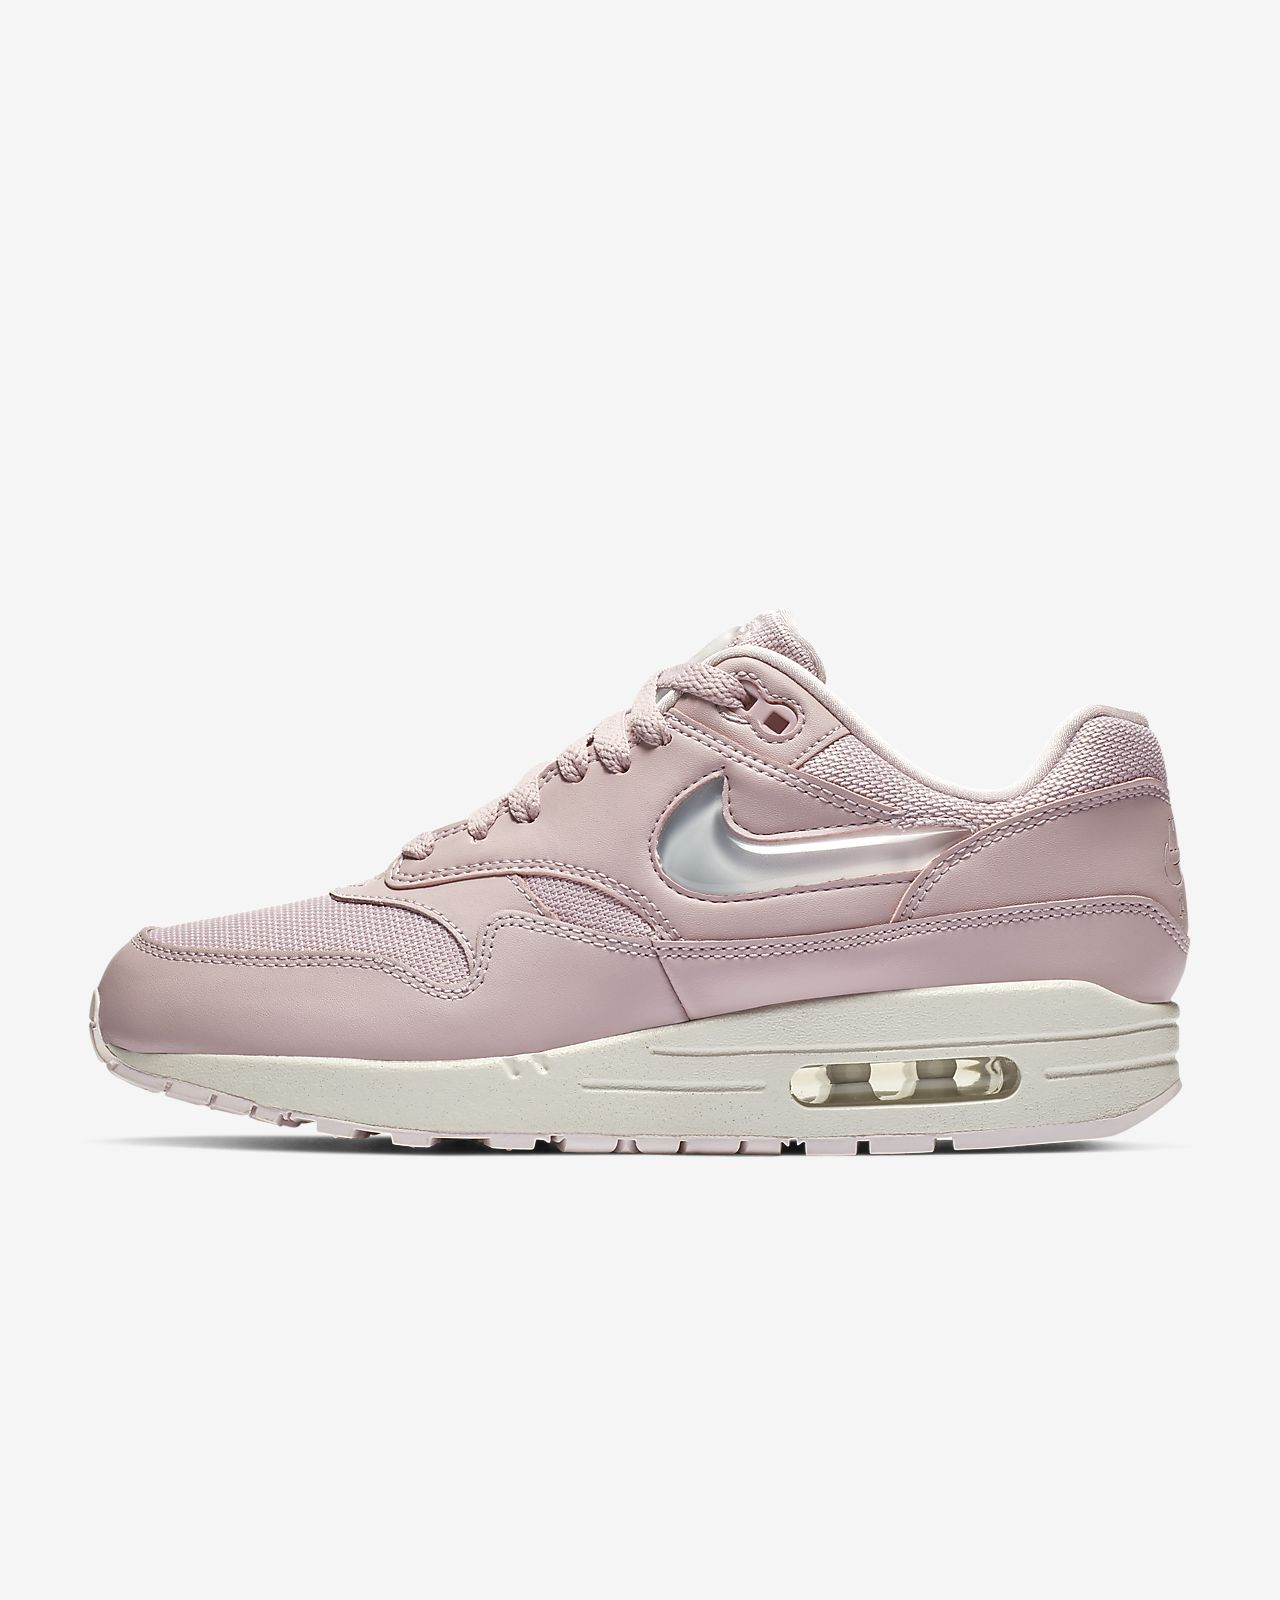 a182174404 ... discount code for nike air max 1 premium 6b2b4 15c60